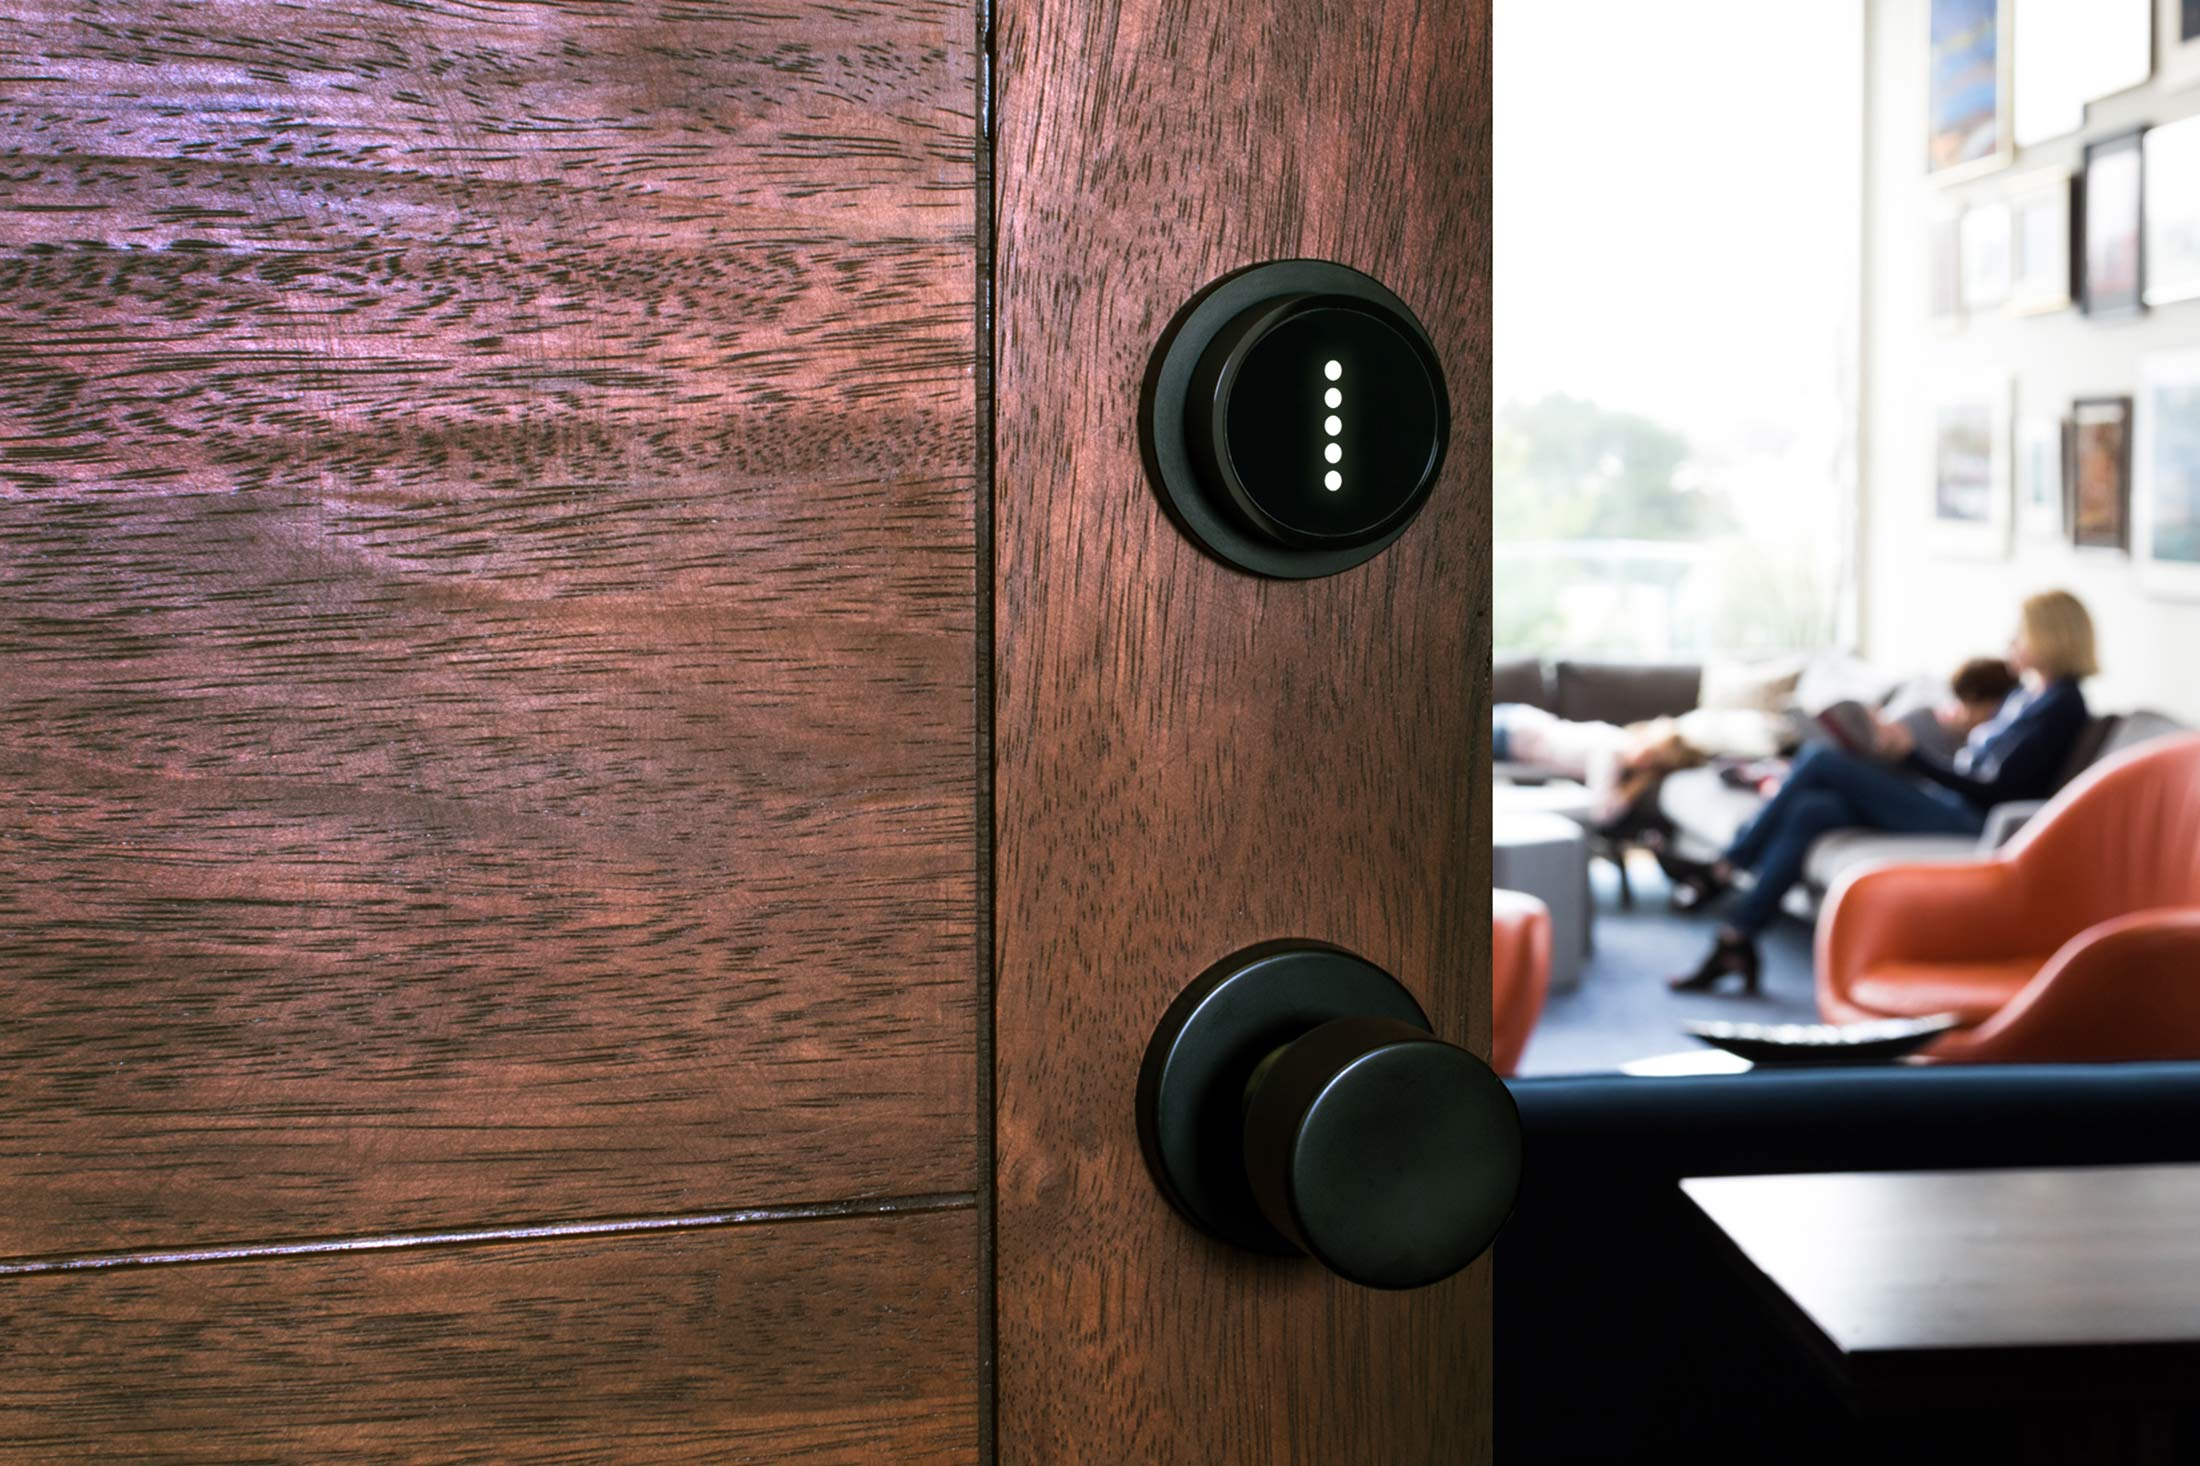 Otto, maker of the $700 smart lock, suspends operations